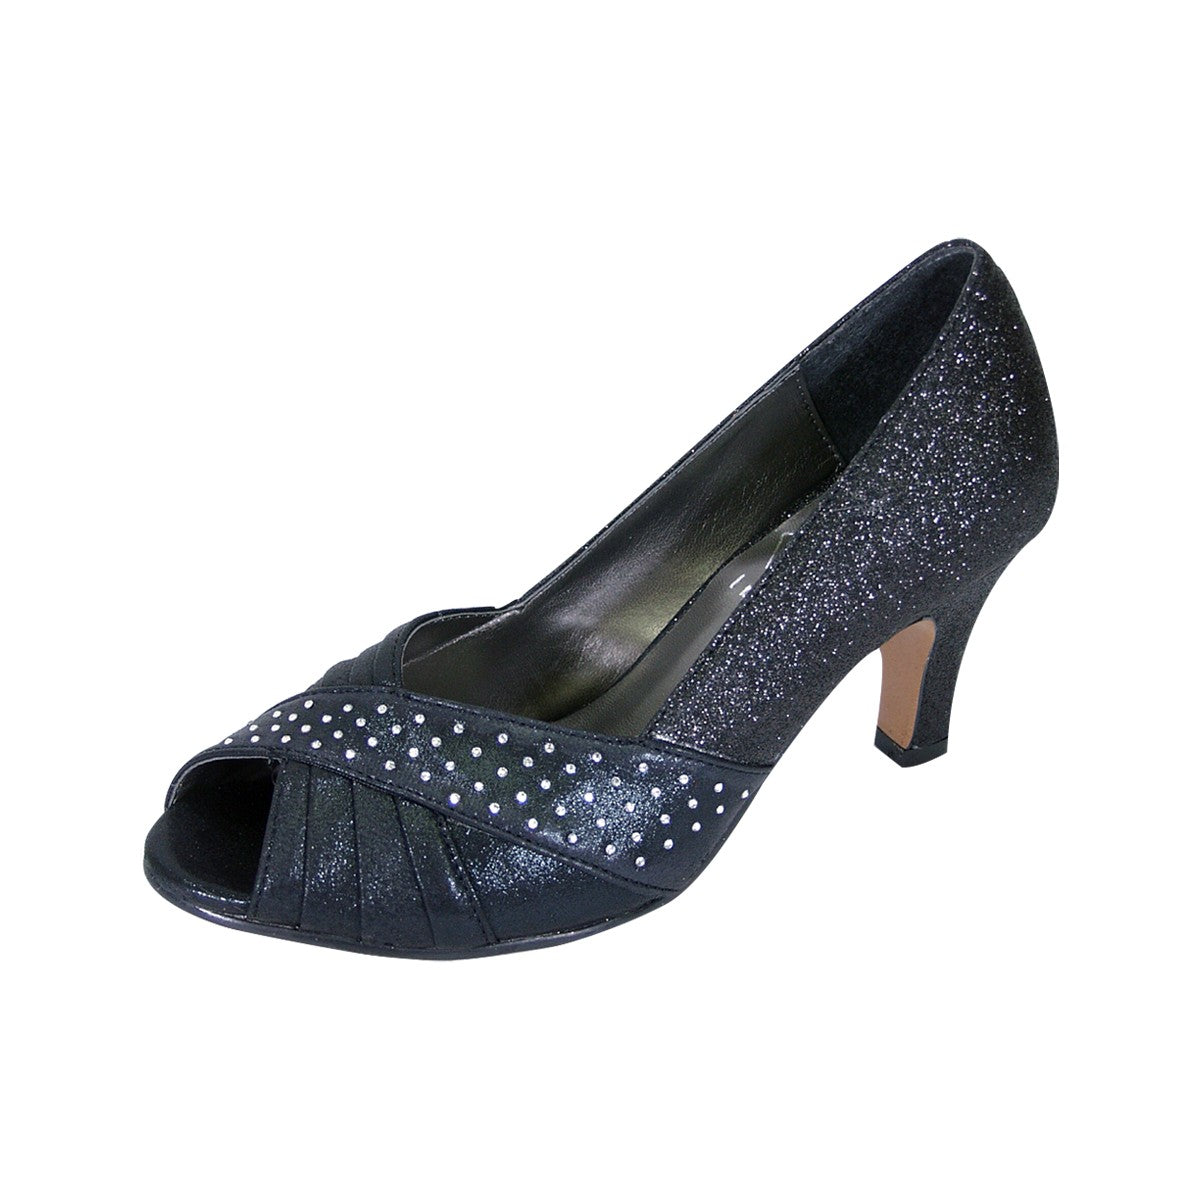 Women Church Shoes DP763 -Black - Church Suits For Less